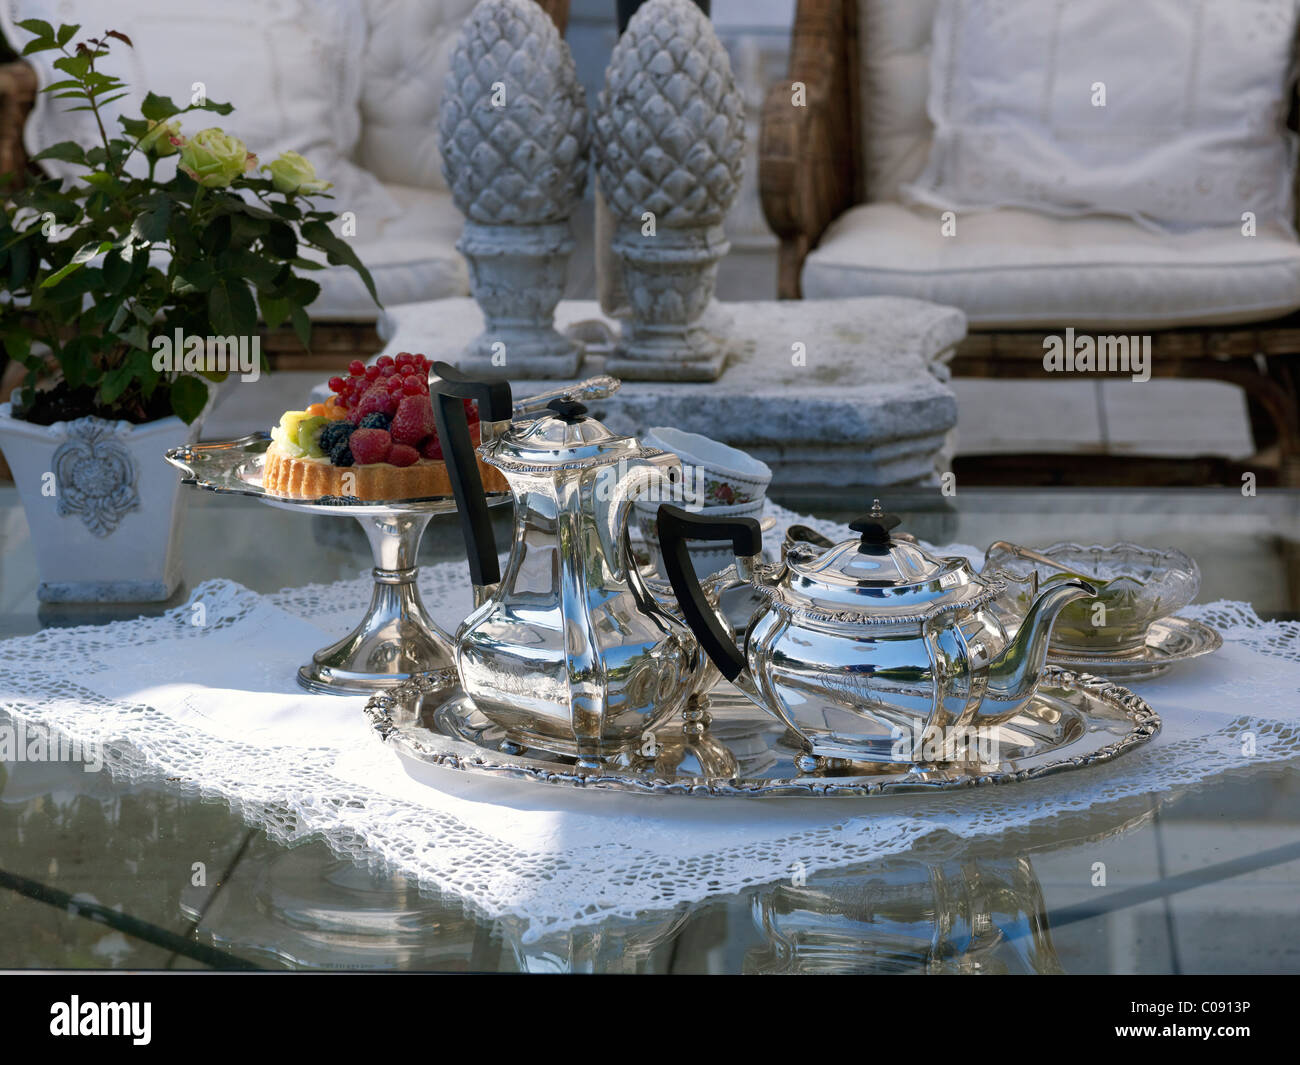 Luxuriously set coffee table with silver coffee and tea pots, and a fruit pie on a silver cake plate - Stock Image